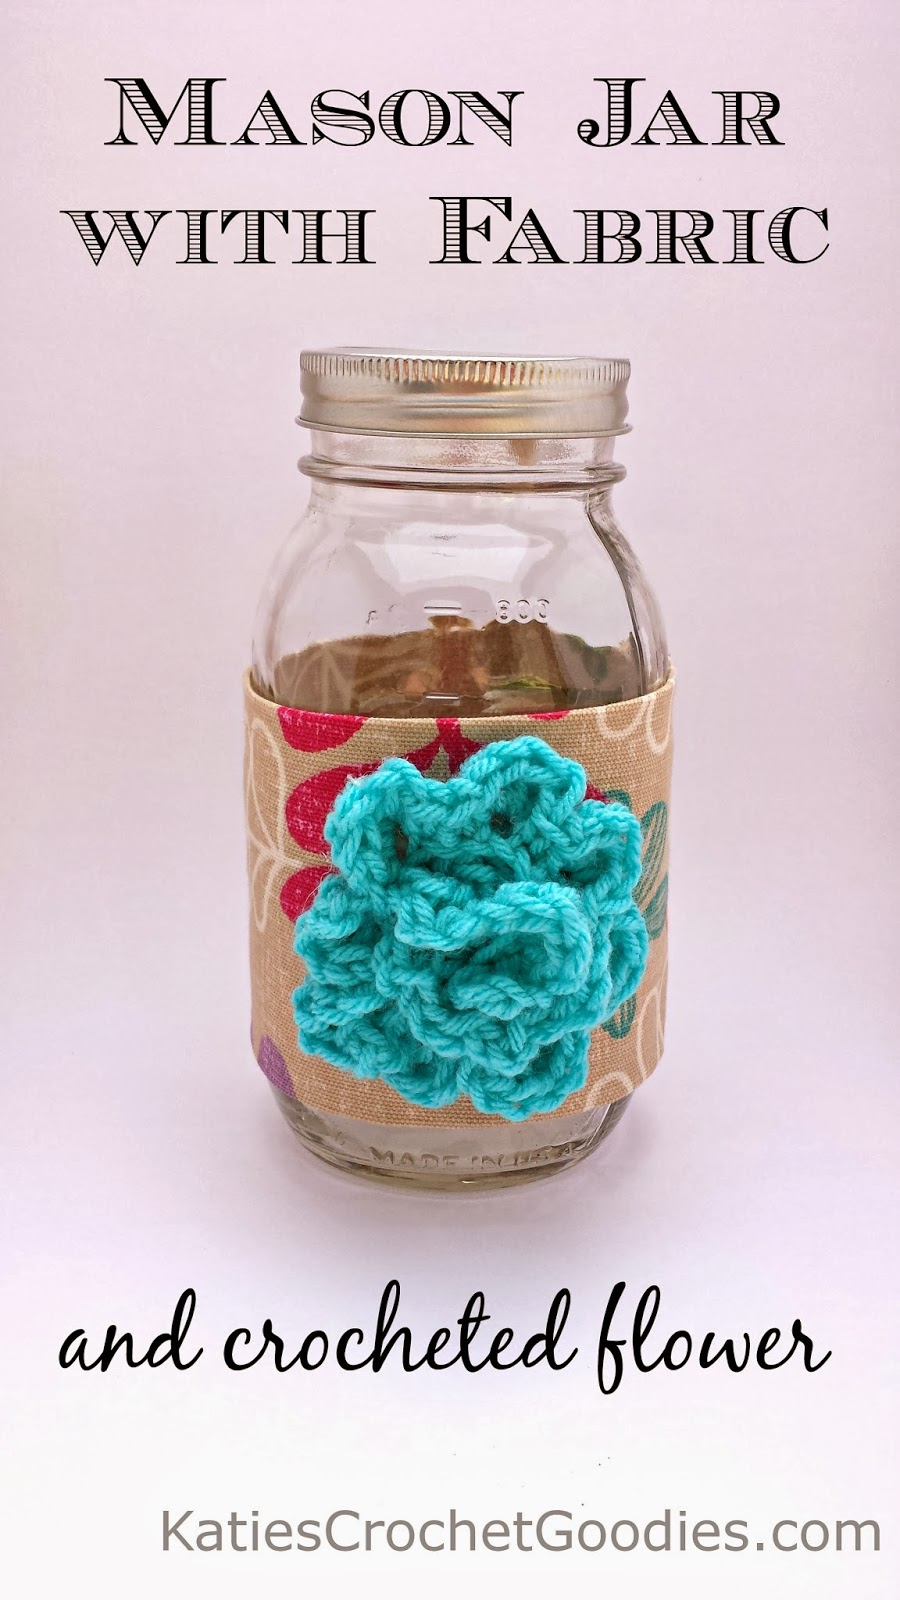 DIY Mason Jar Craft Katies Crochet Goodies